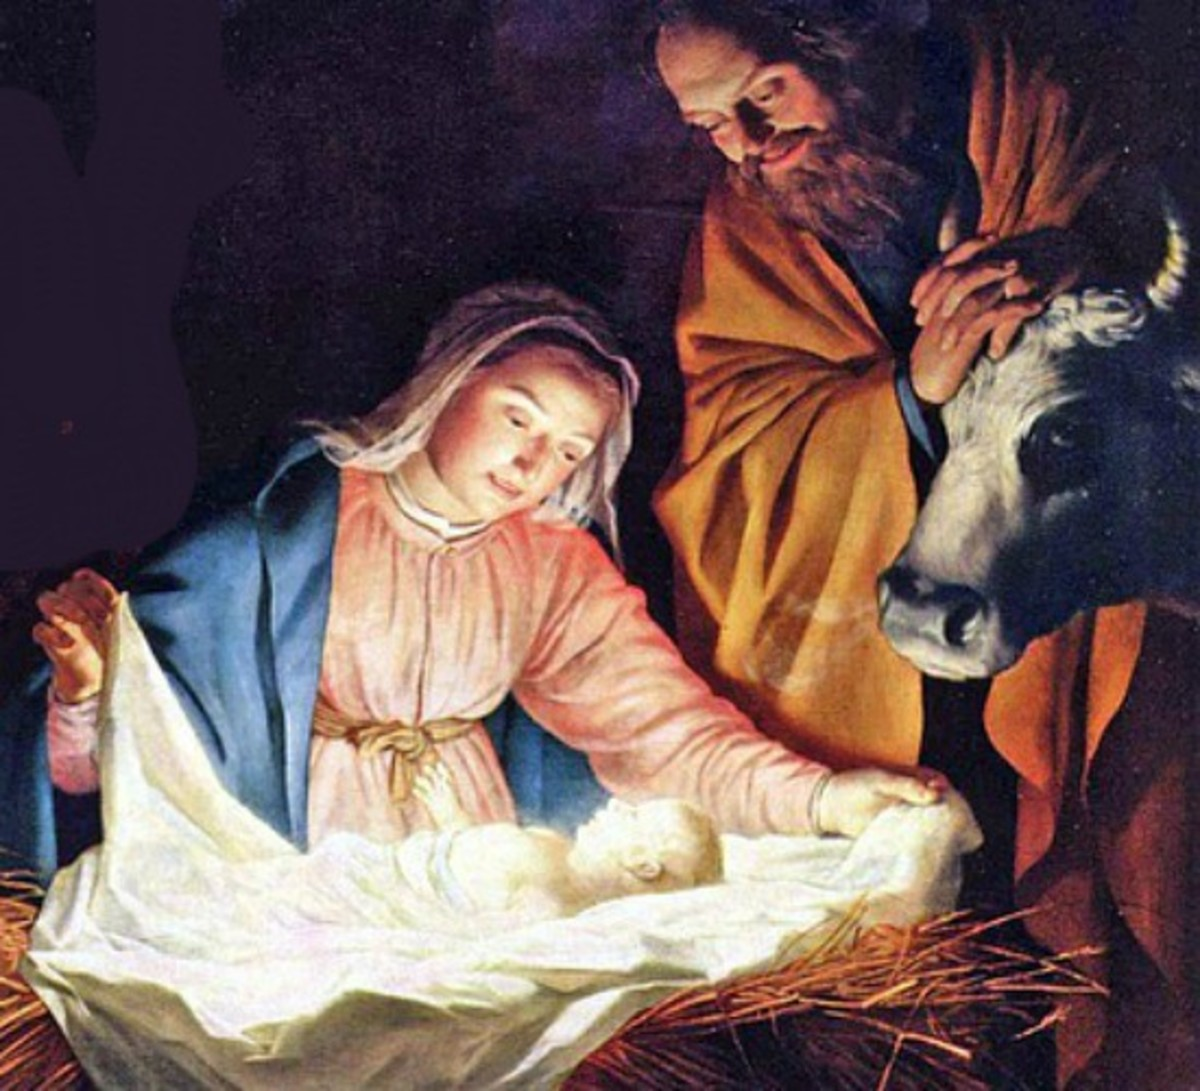 Timeline of Jesus' Birth, Life and Ministry